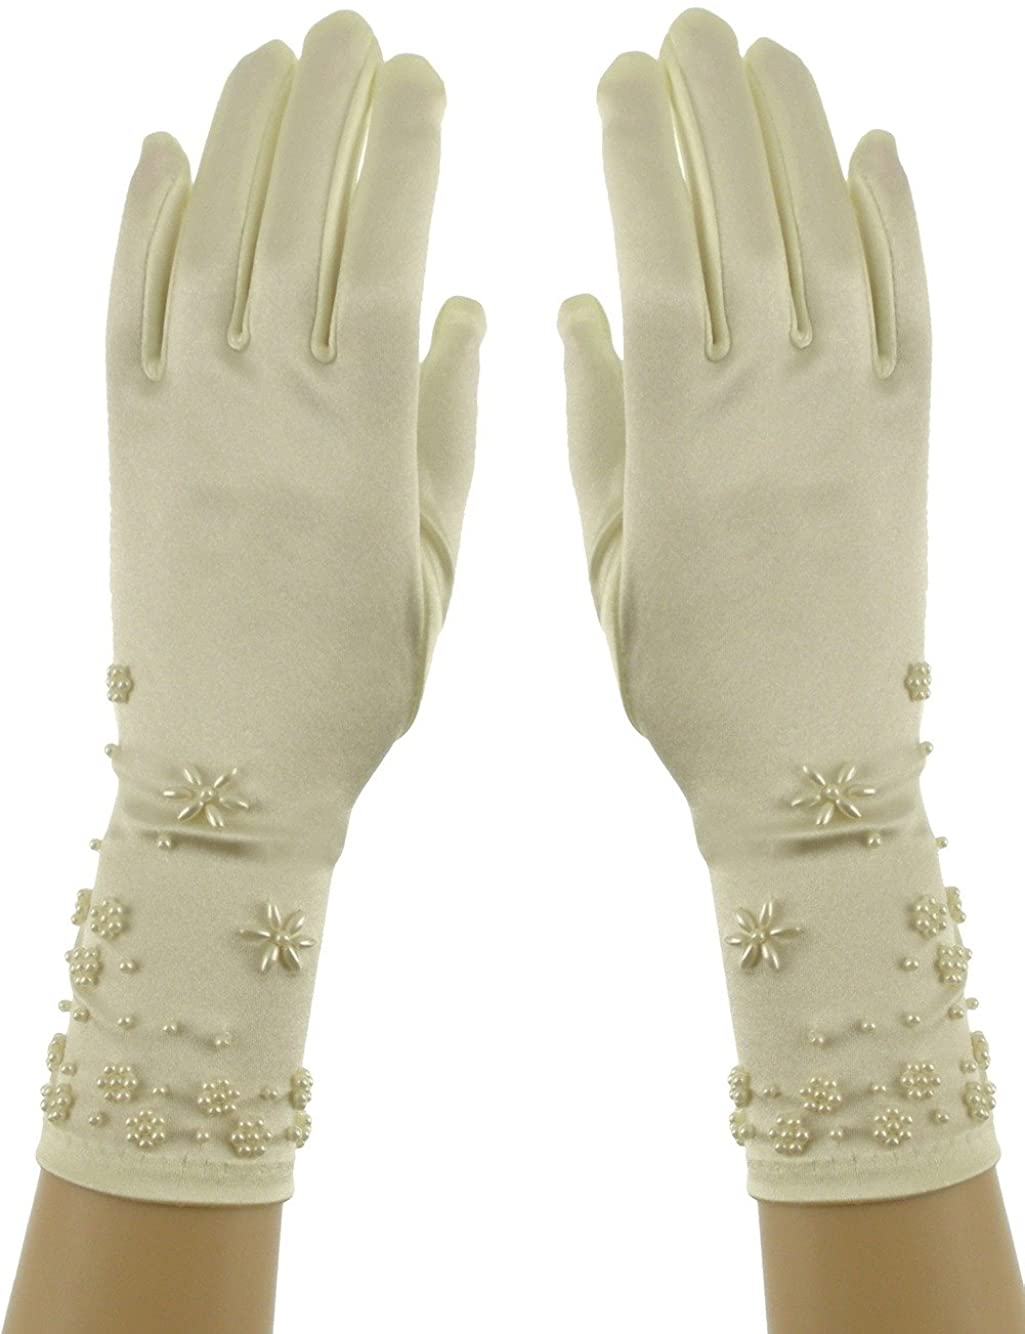 Above Wrist 11-Inch Faux Pearl Embroidery Shinny Satin Bridal Gloves Ivory